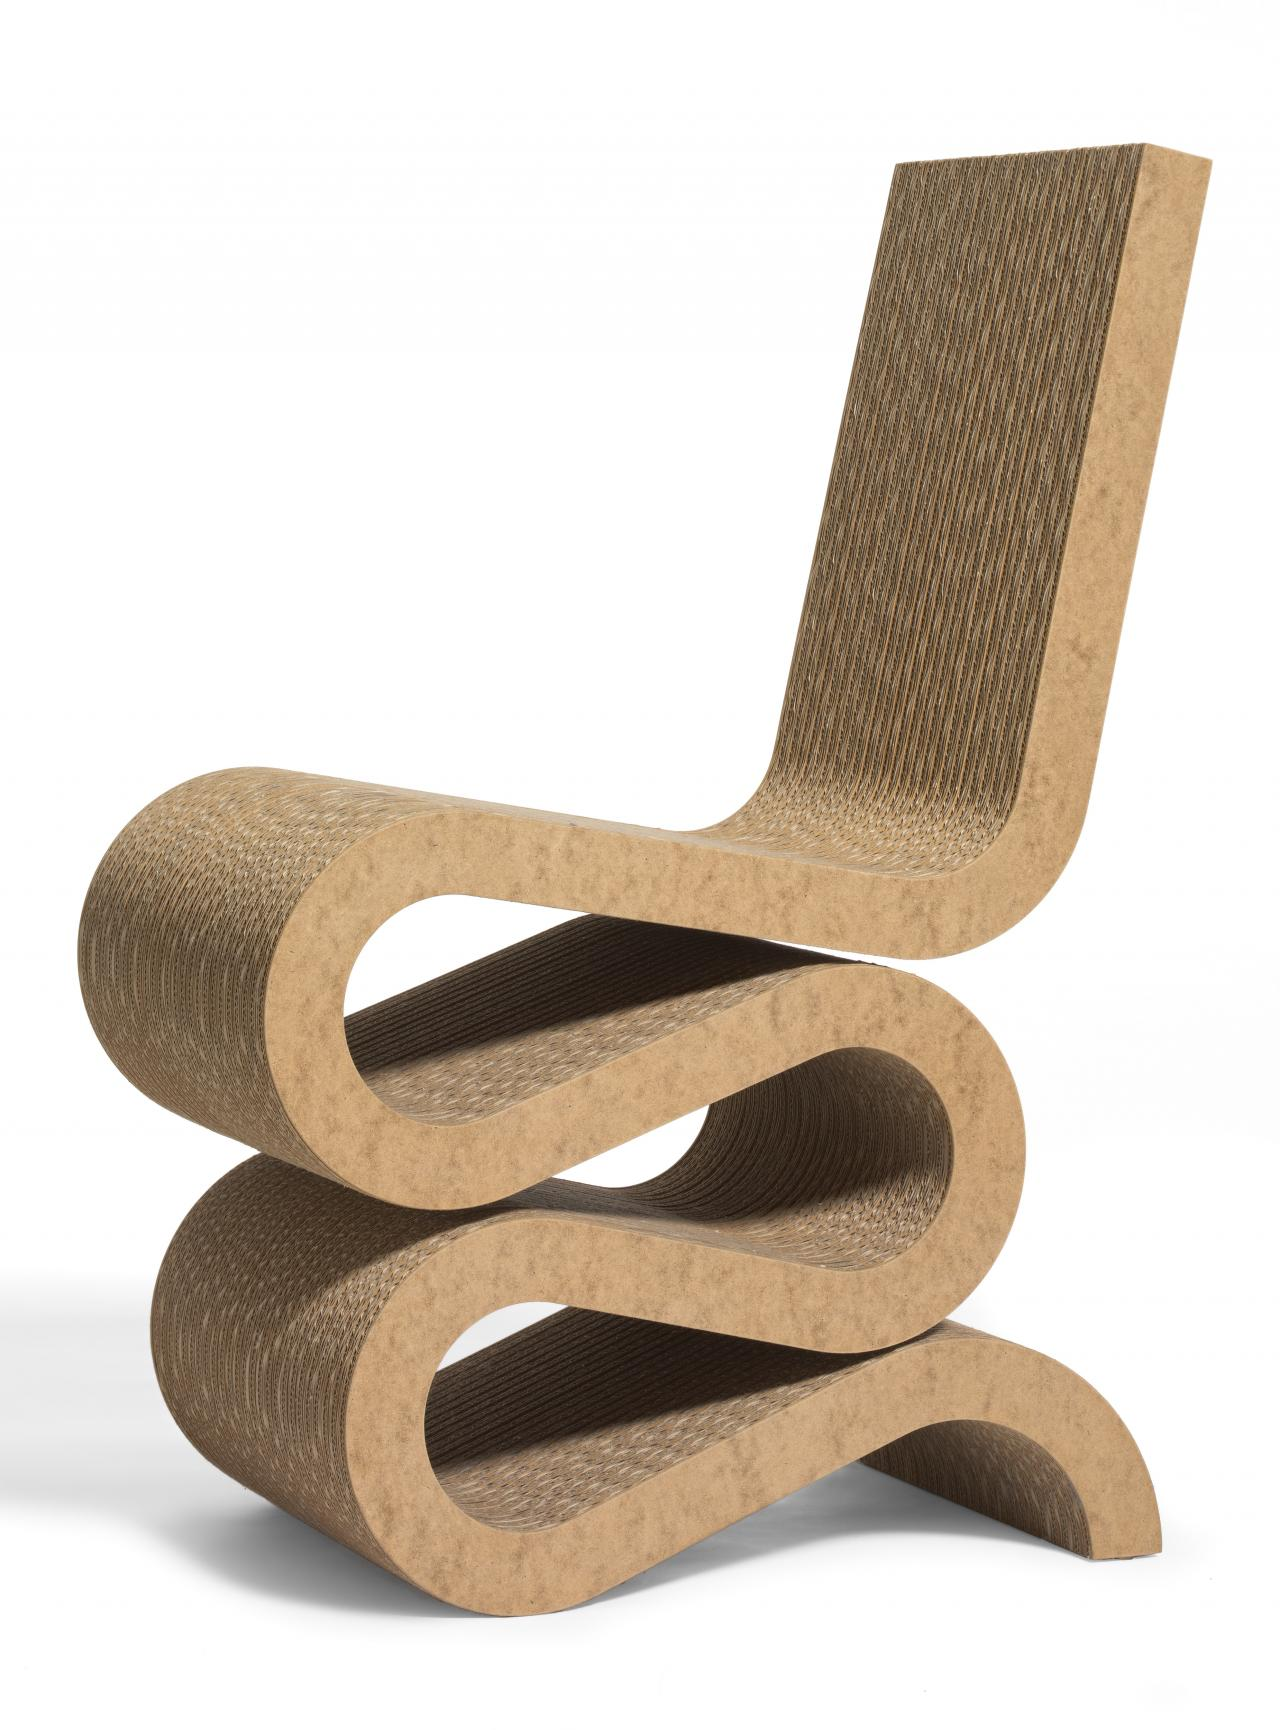 Wiggle Side Chair Frank O GEHRY designer VITRA Weil